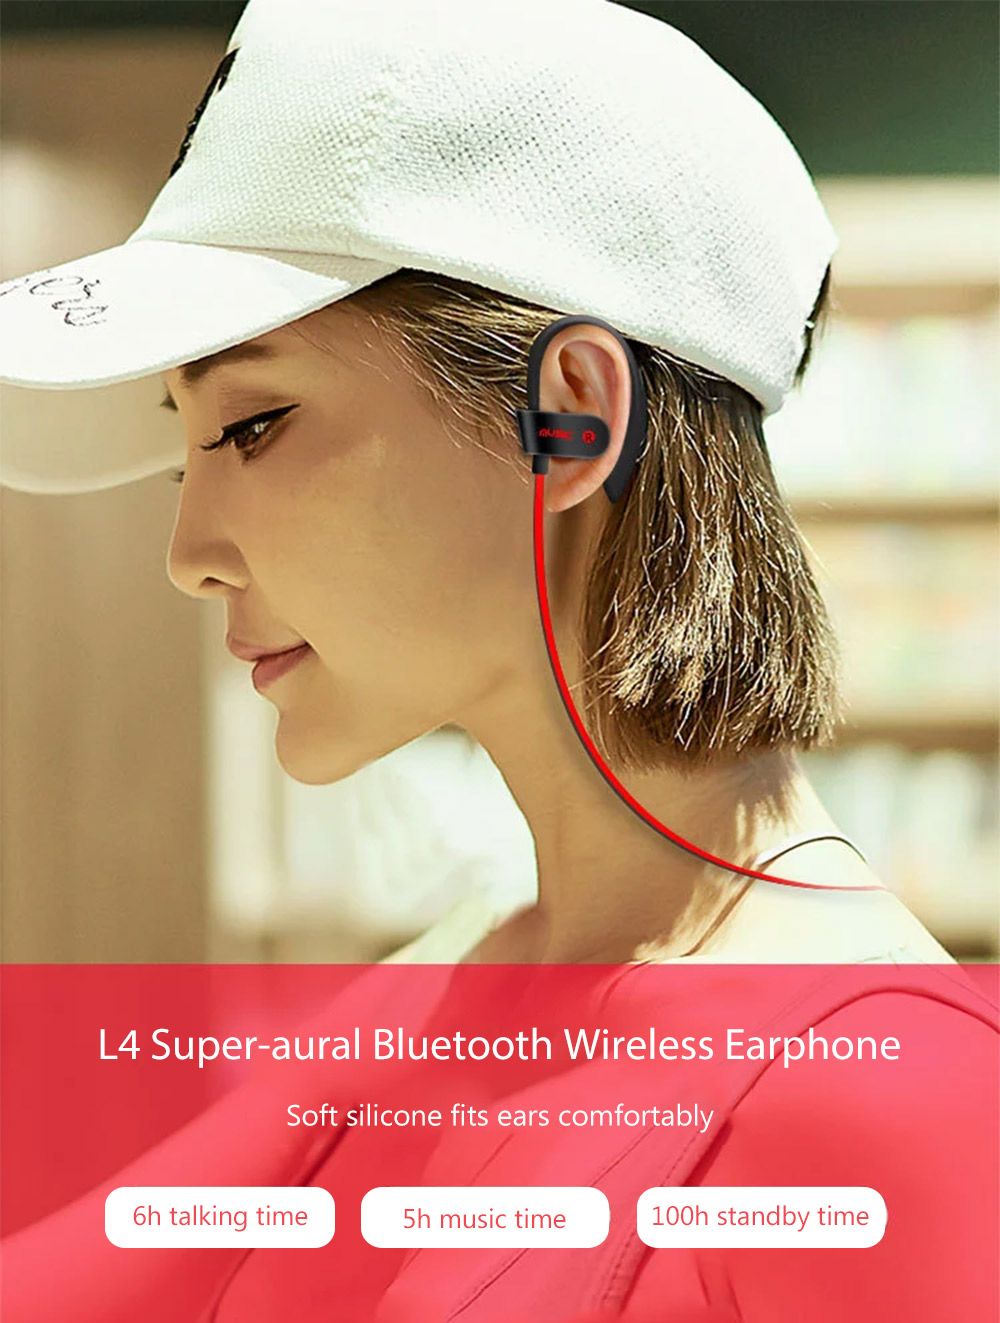 L4 Super-aural Bluetooth Earphone Wireless Earbuds for Sports with Mic- Green Yellow